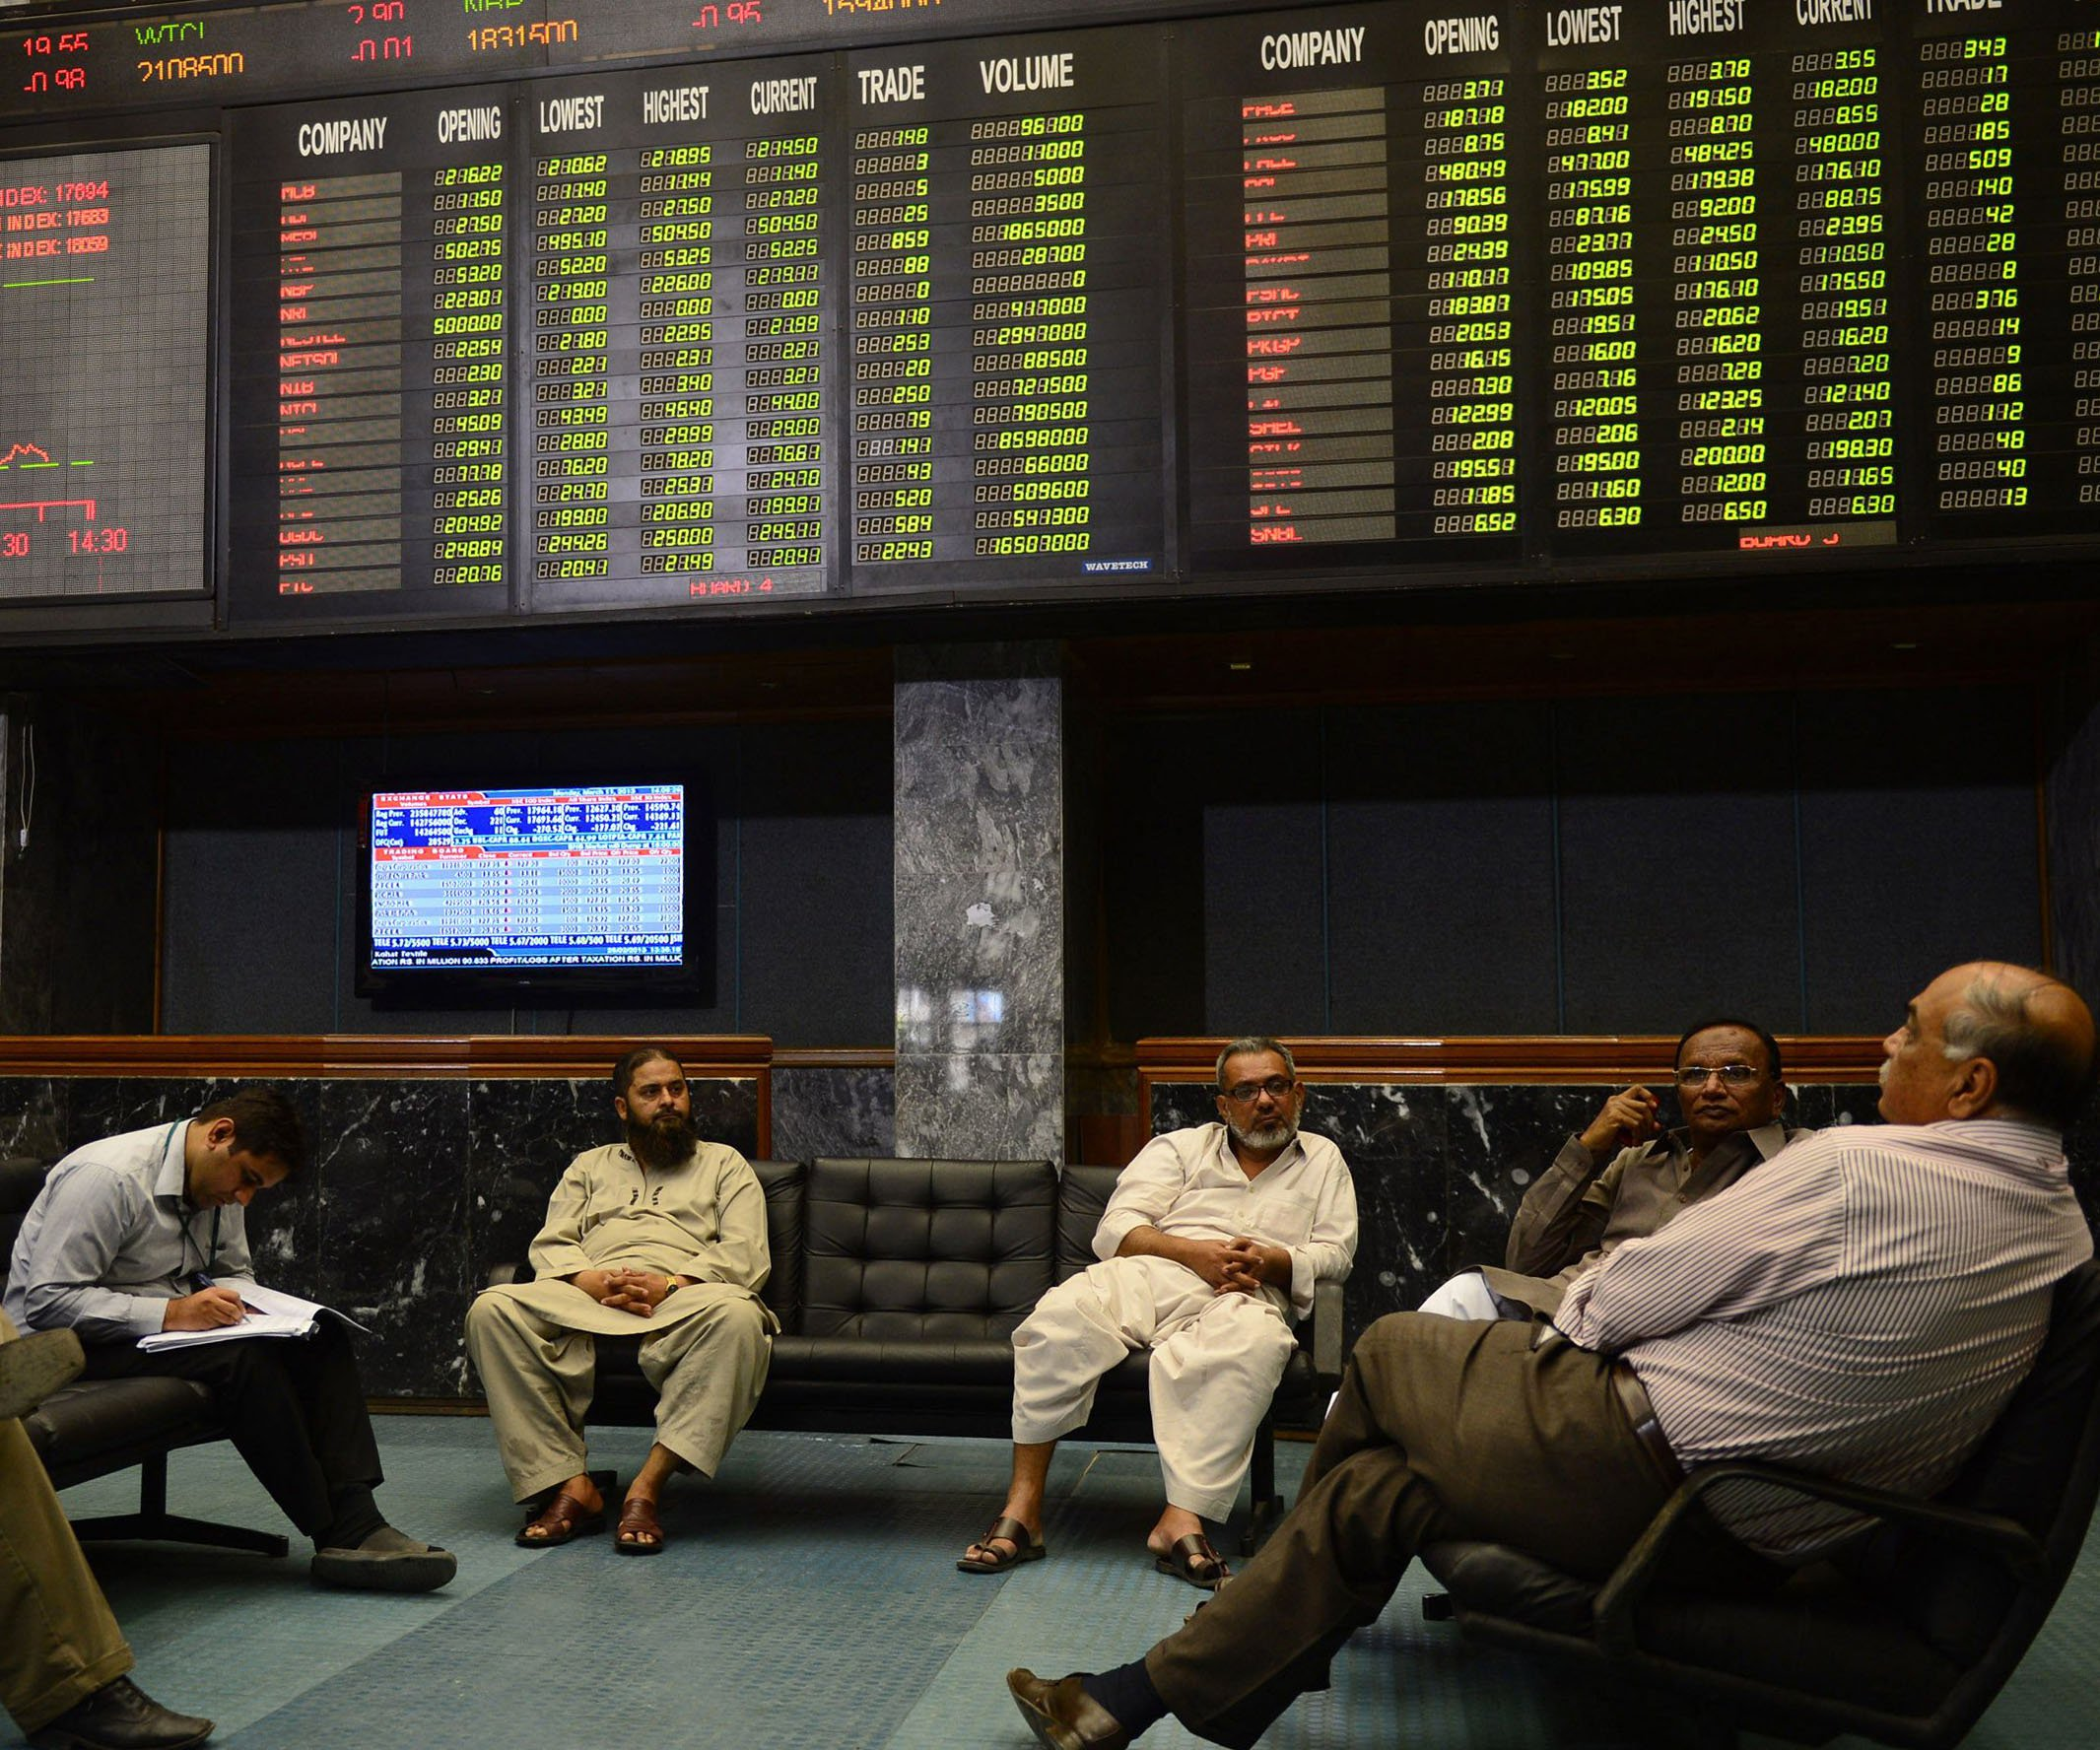 Benchmark index decreases 0.01% to settle at 40,869.28 PHOTO: AFP